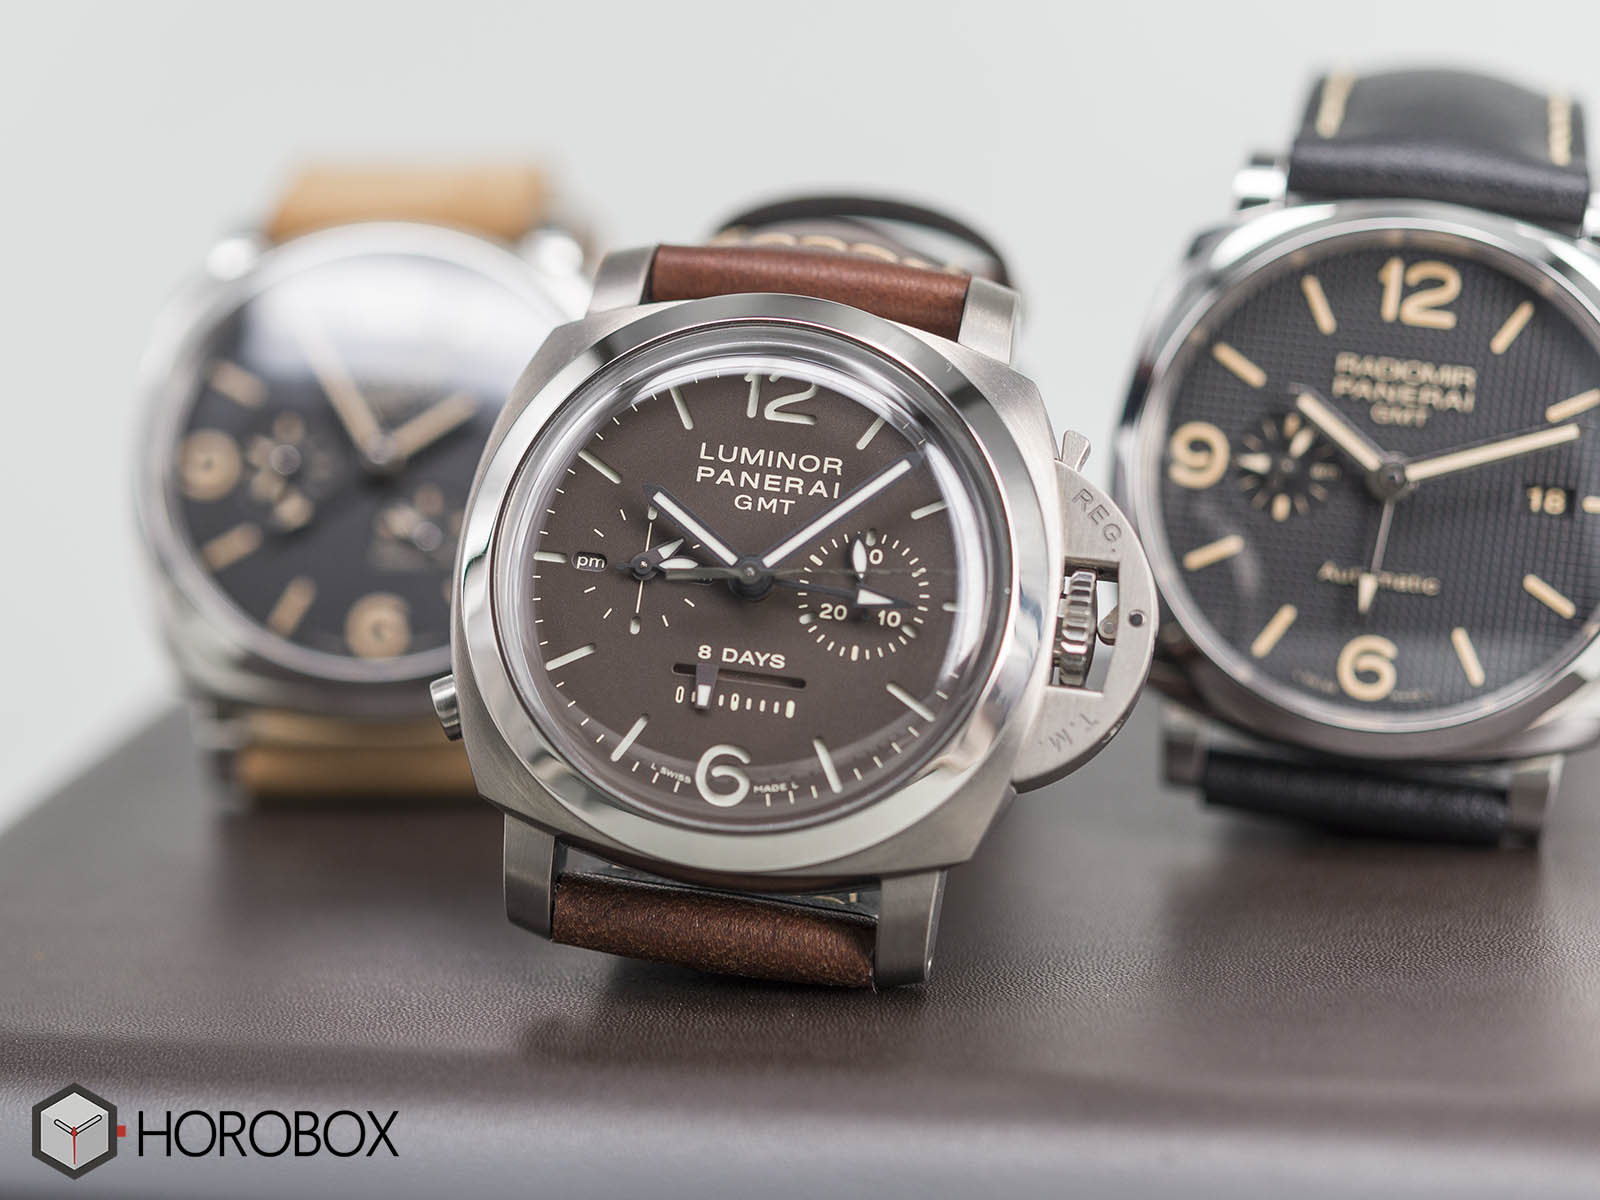 Officine-panerai-power-reserve-8.jpg